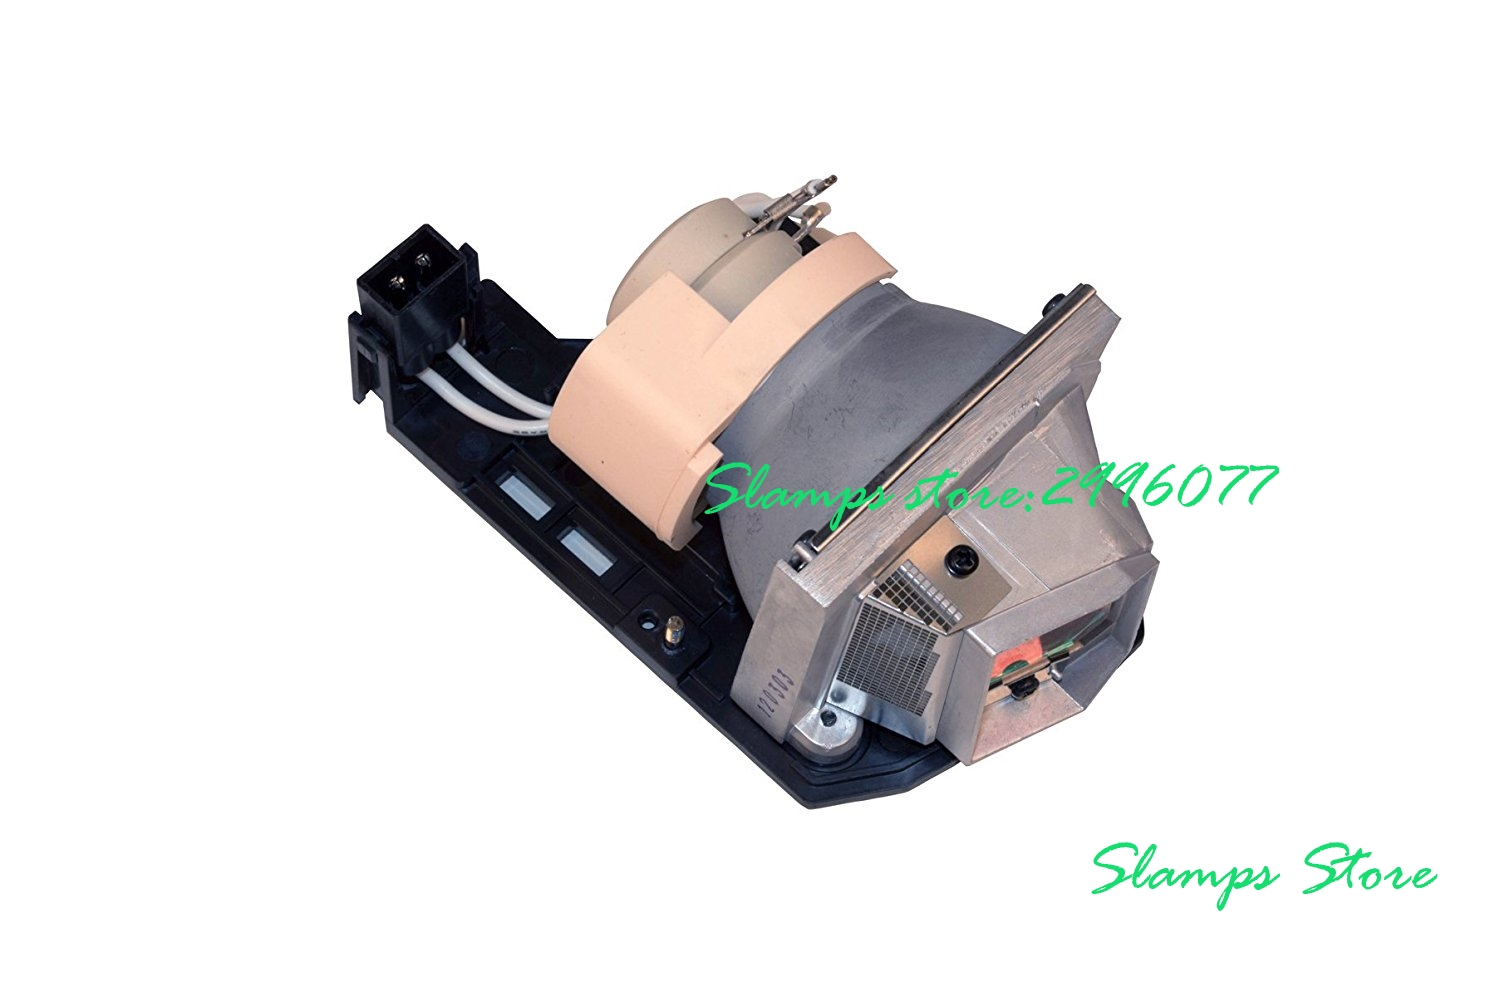 BL-FP230J/SP.8MQ01GC01 Projector lamp With Housing for OPTOMA HD20(Q8NJ)/HD20-LV (Q8NJ)/DH1010/EH1020/EX612/EX615/GT750/GT750-XL<br>